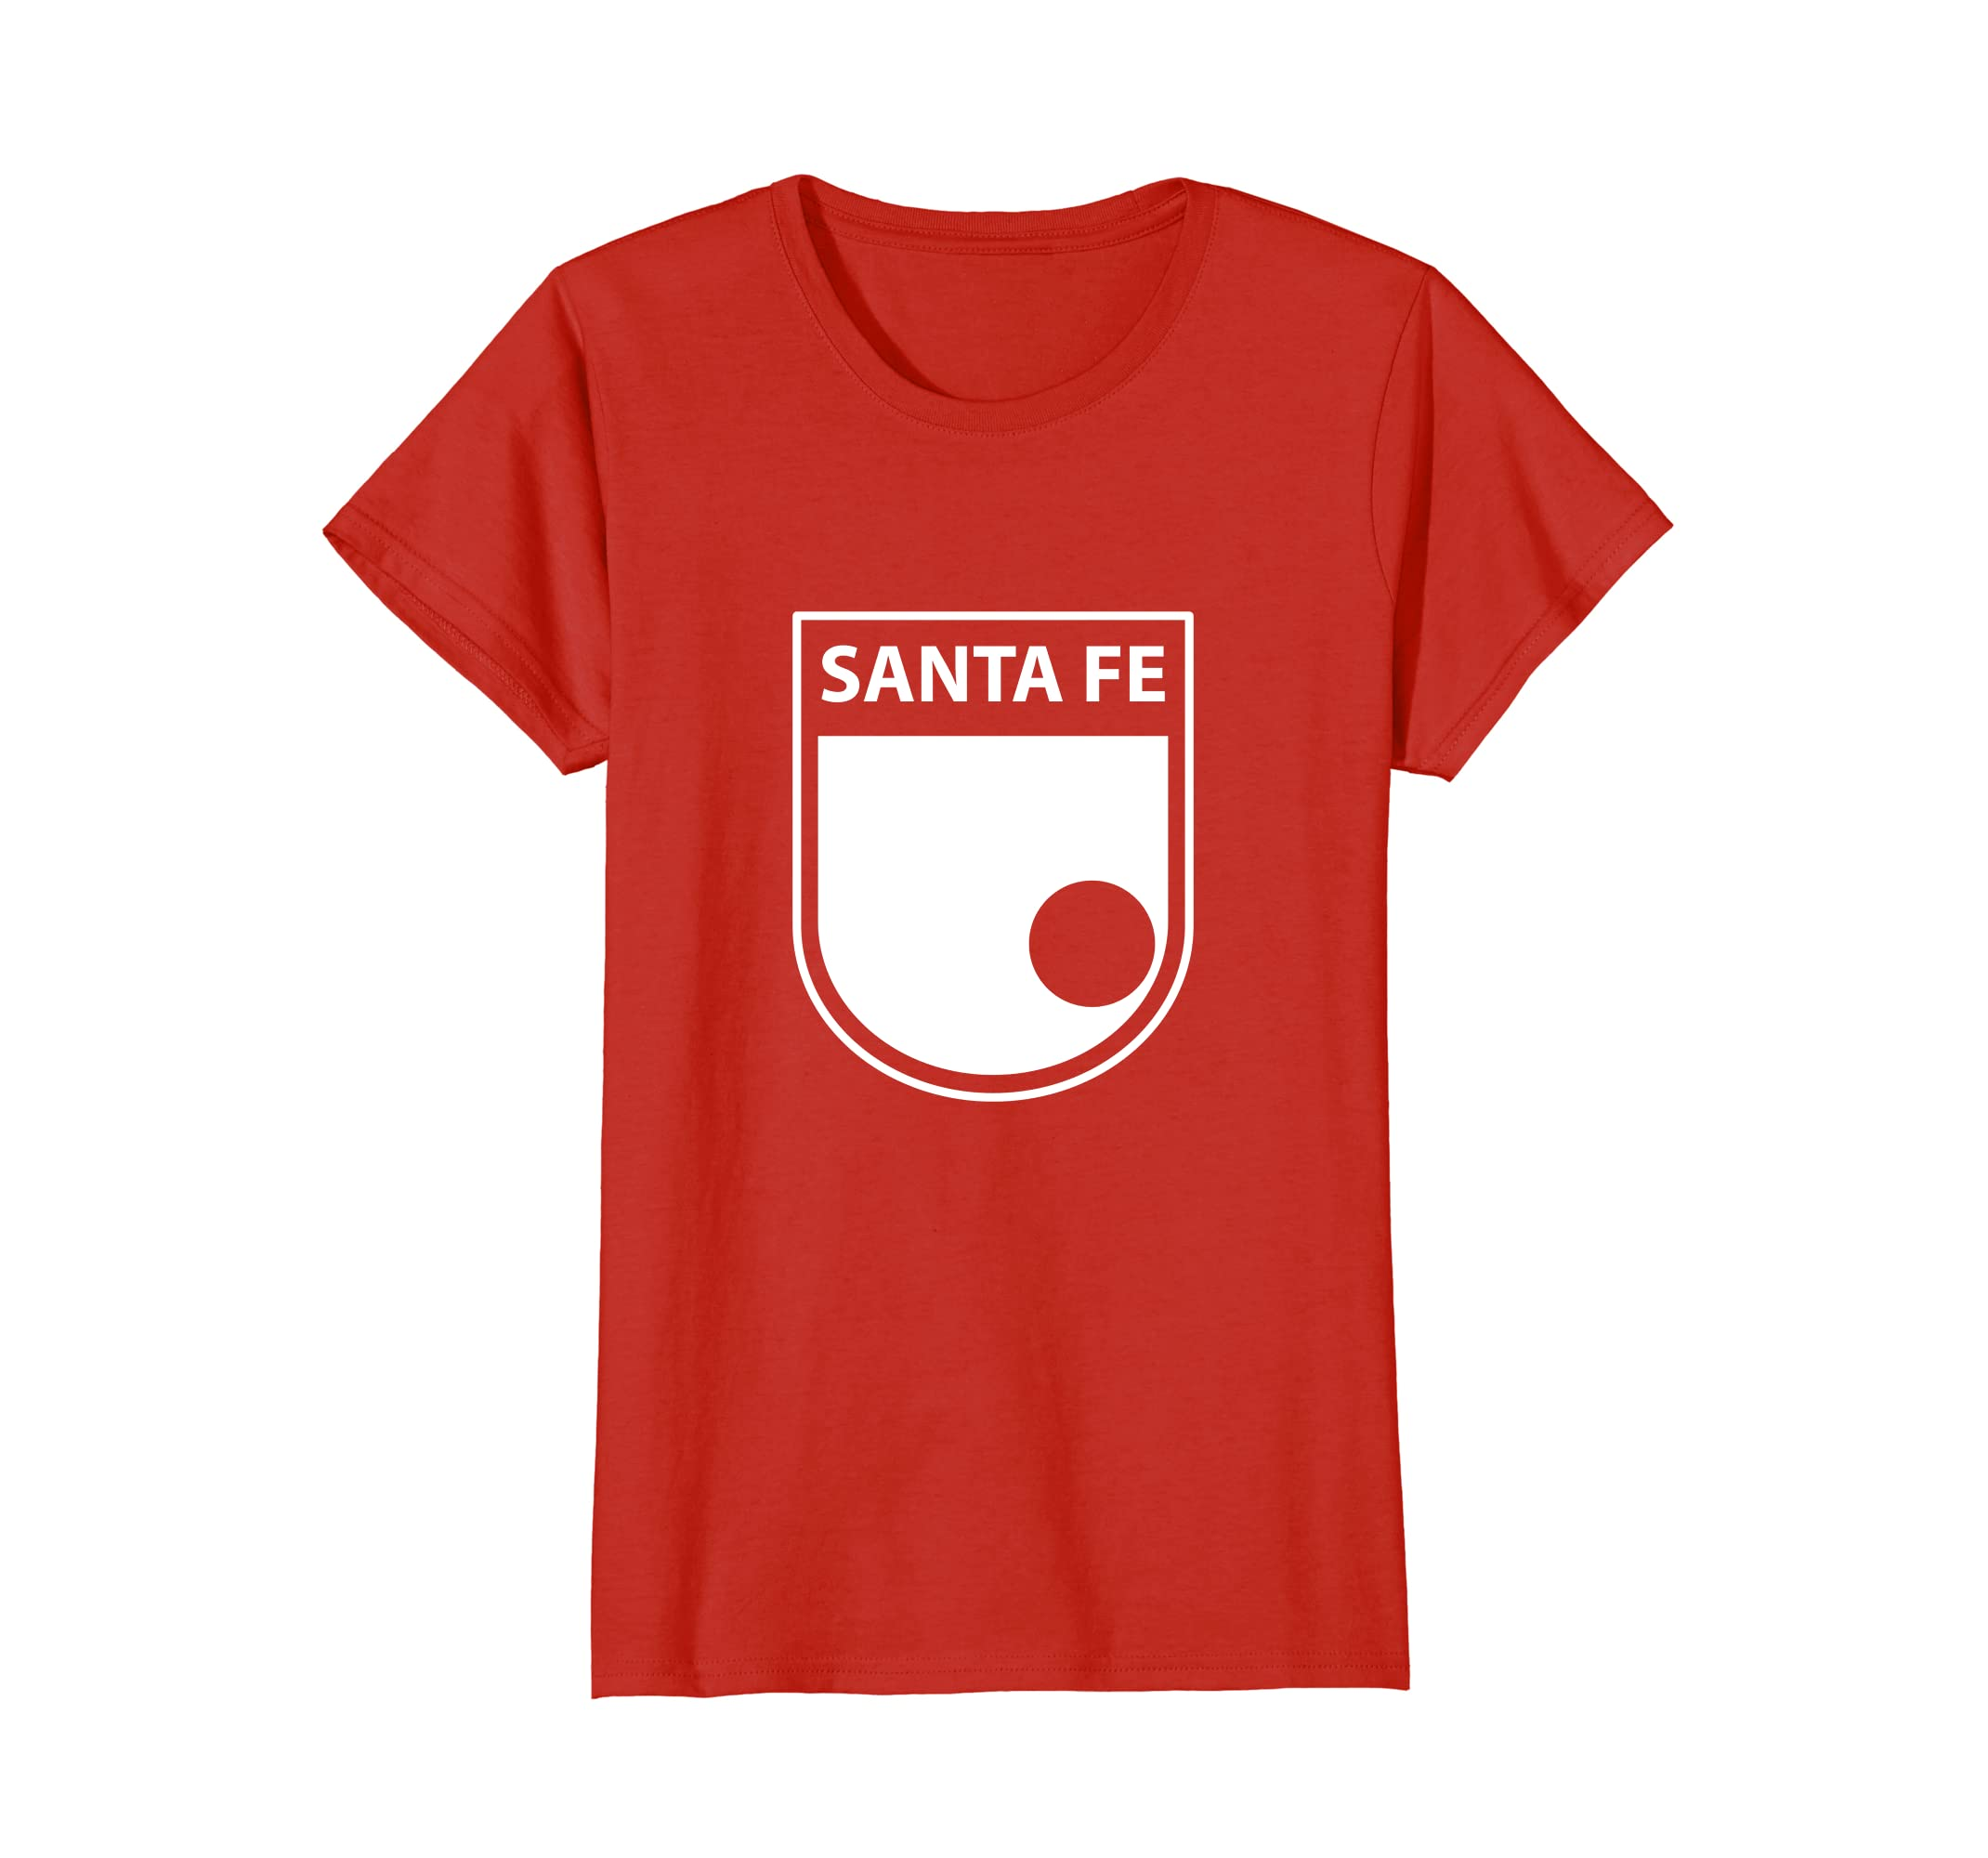 Amazon.com: Independiente Santa Fe Bogota Colombia Camiseta TShirt: Clothing